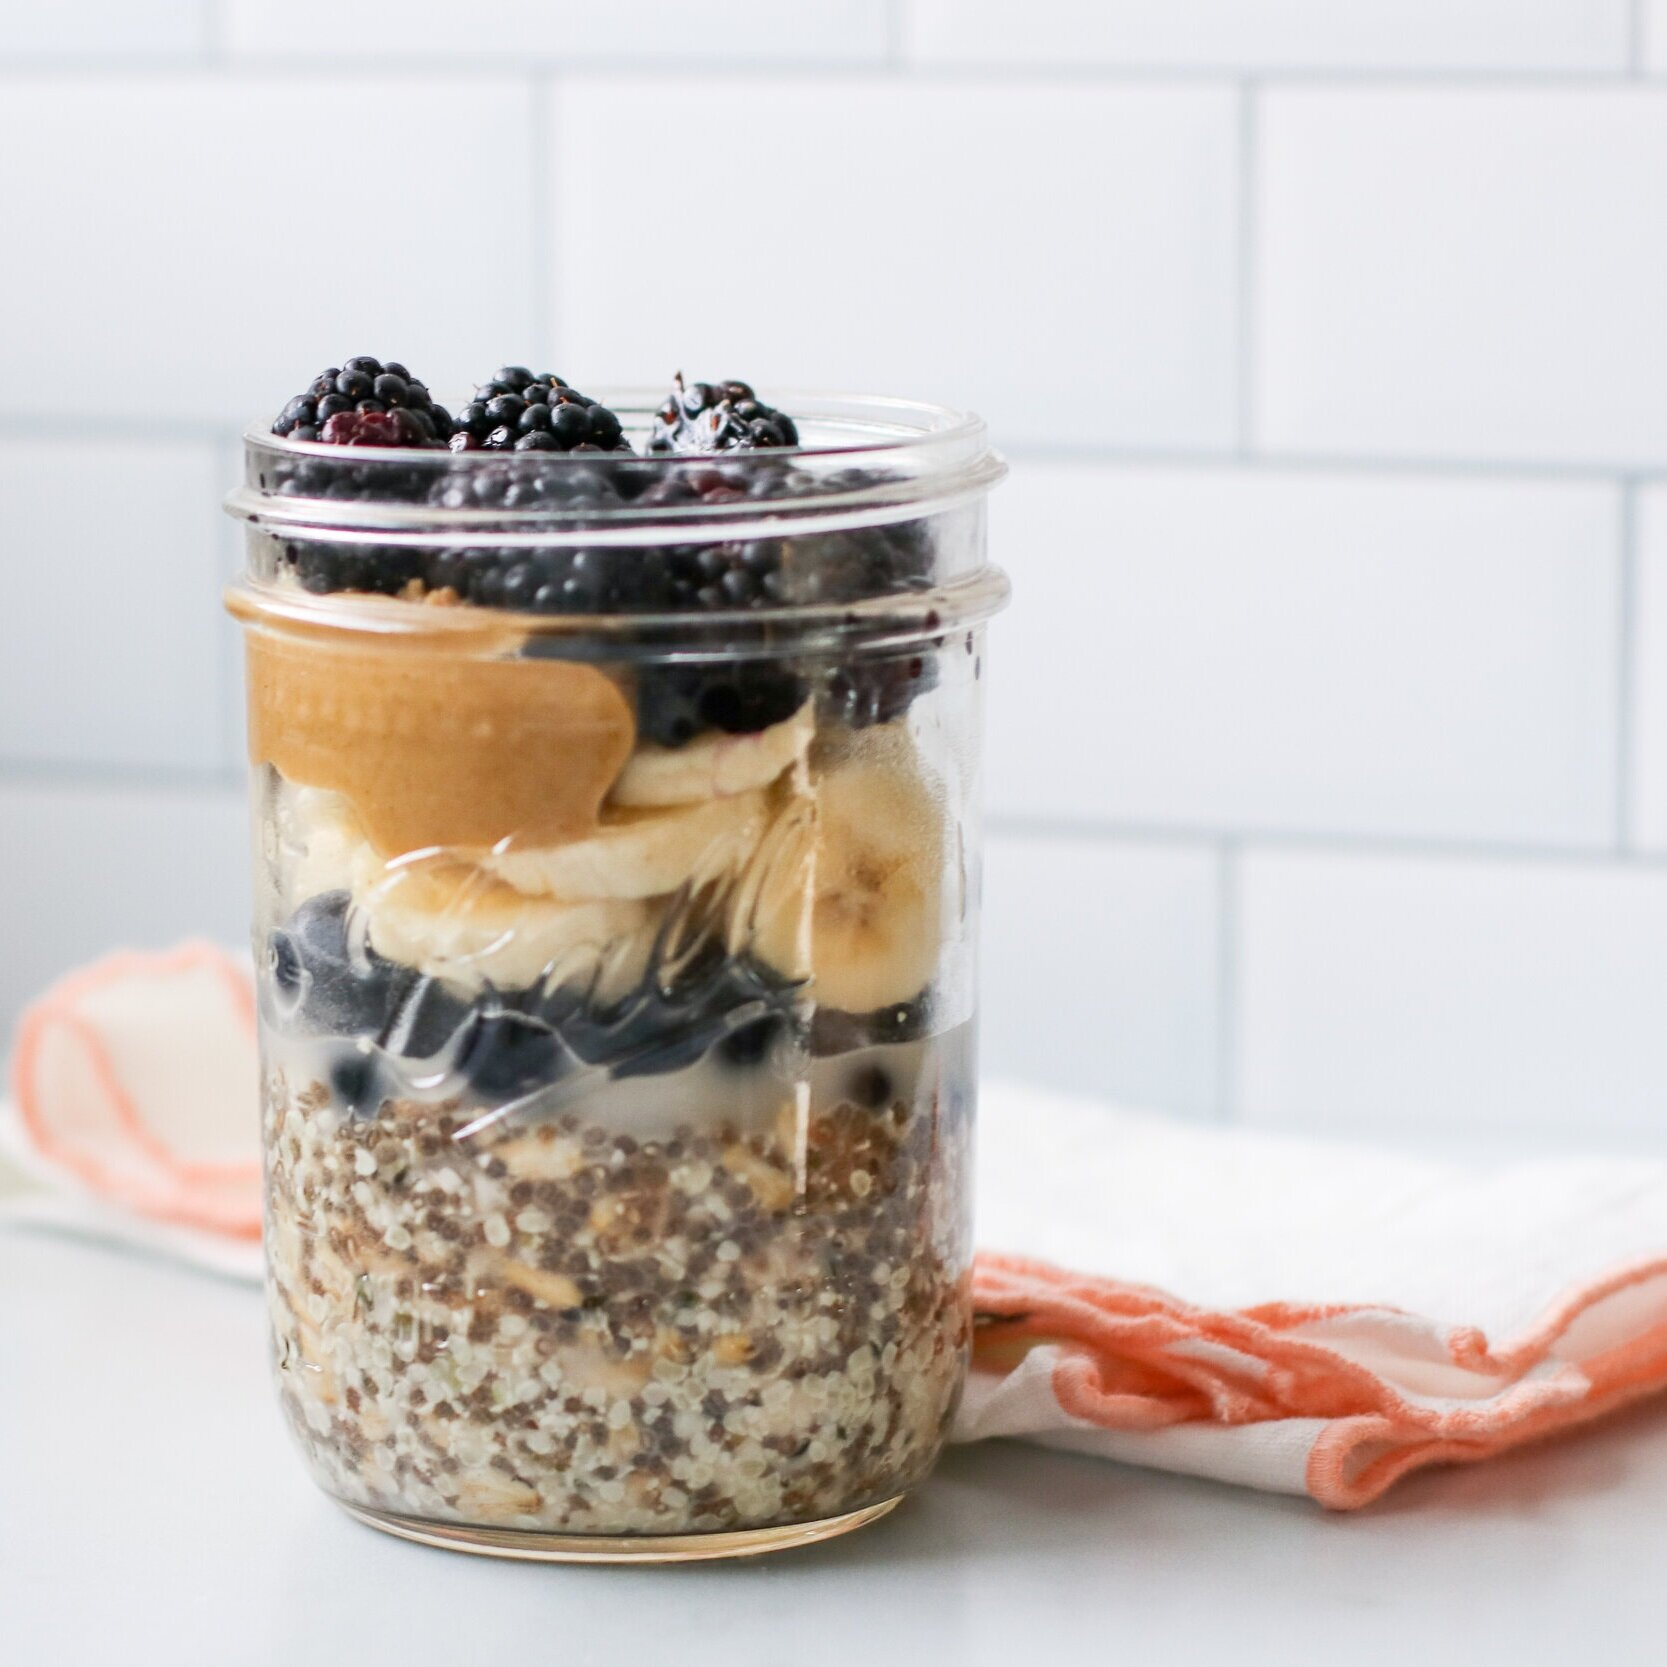 Overnight Oats - For busy, rush out the door mornings, overnight oats are my jam. Here I used chia seeds instead of the flax to mix things up.Top with fruit + nut butter in the morning and you're good to go!